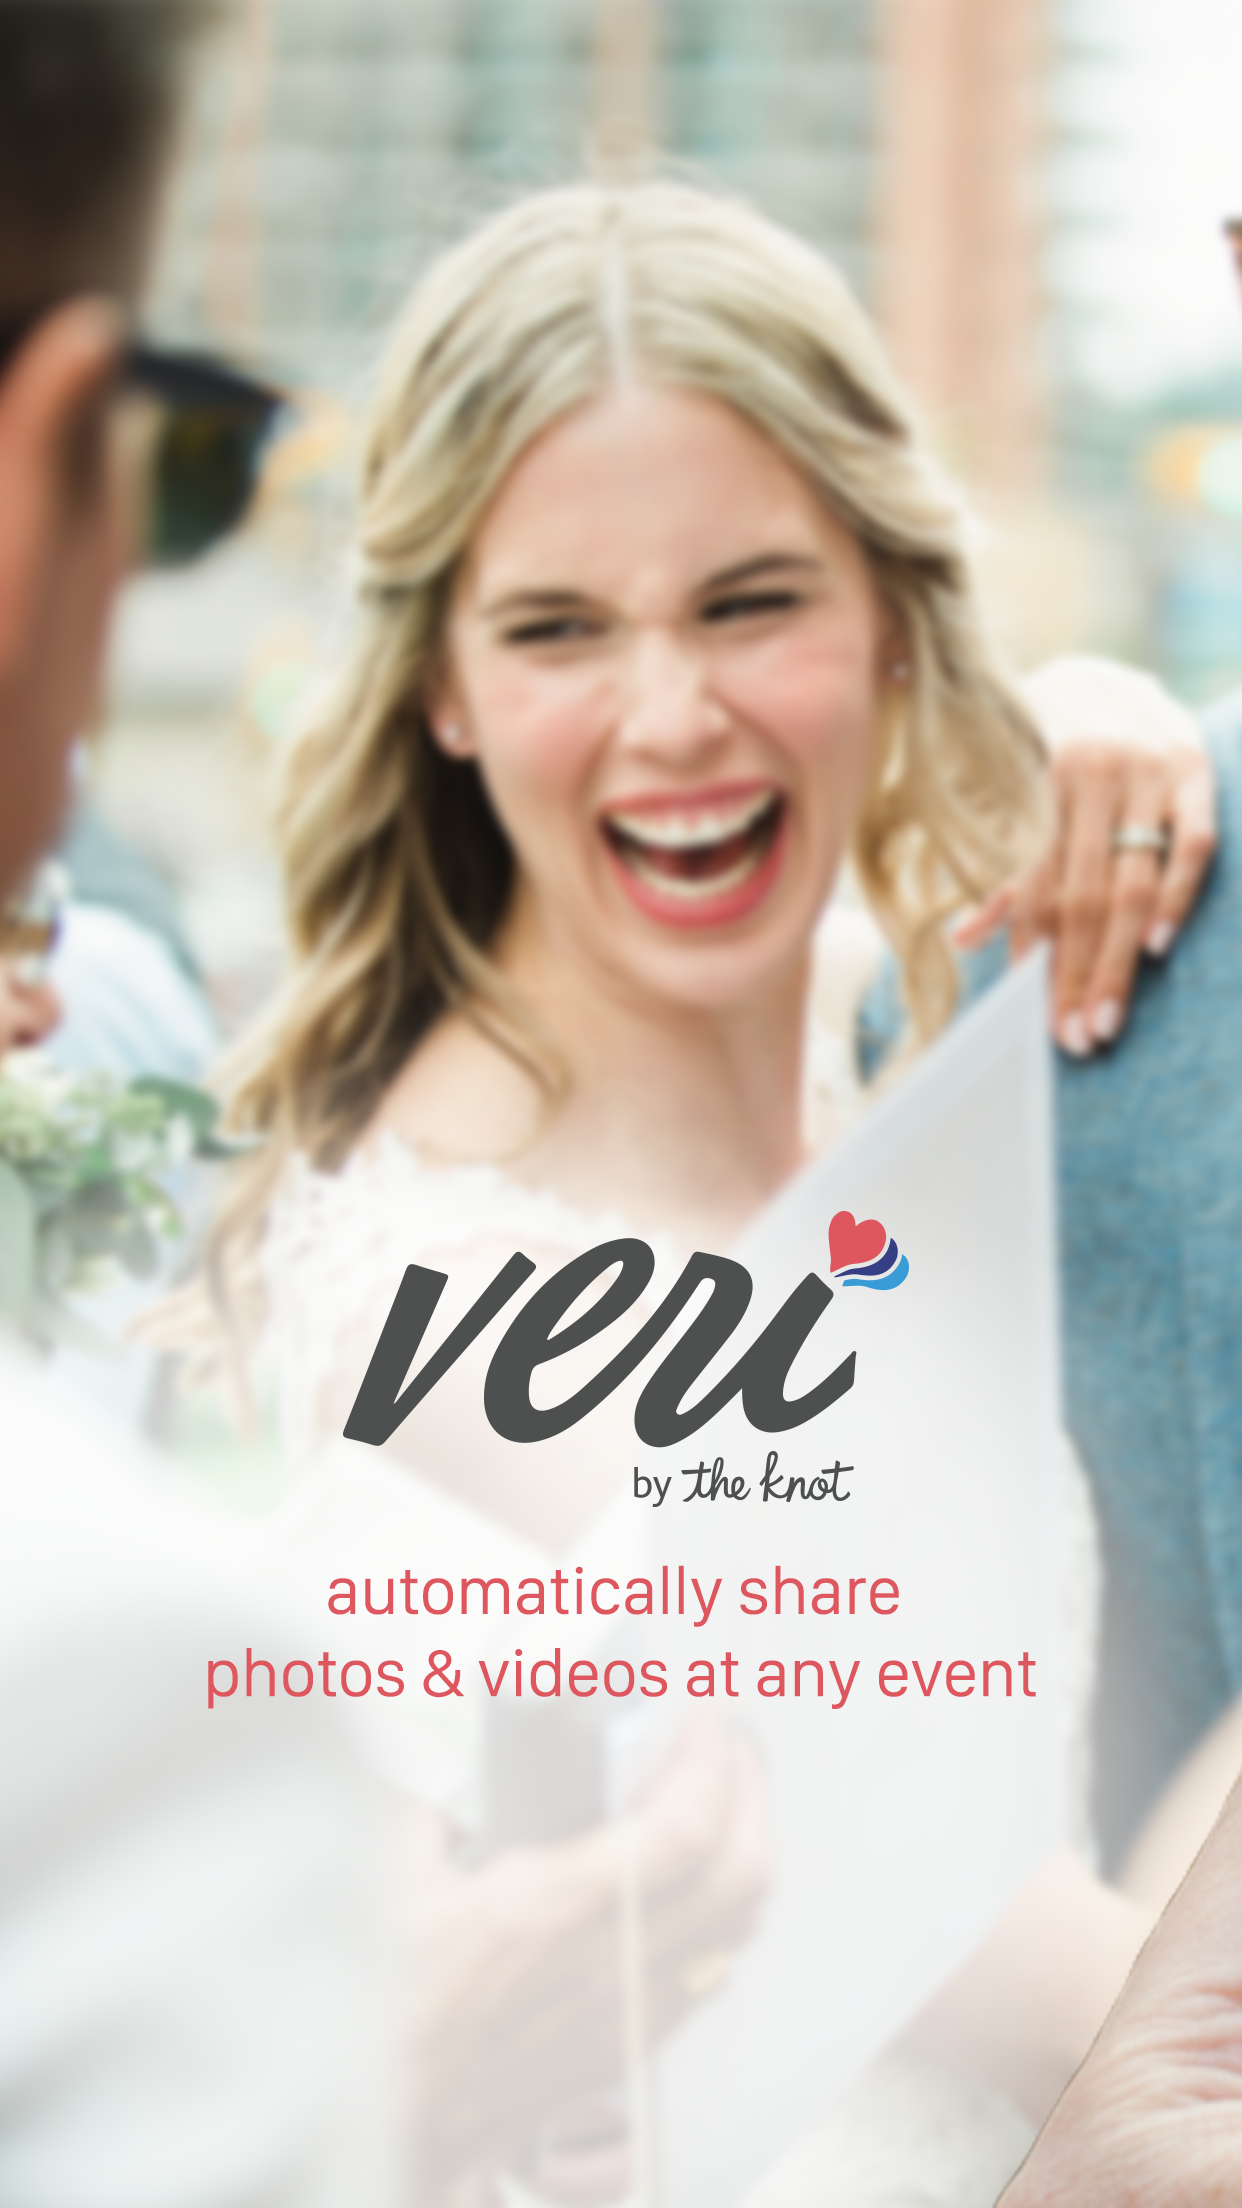 Veri - Share photos & videos Screenshot